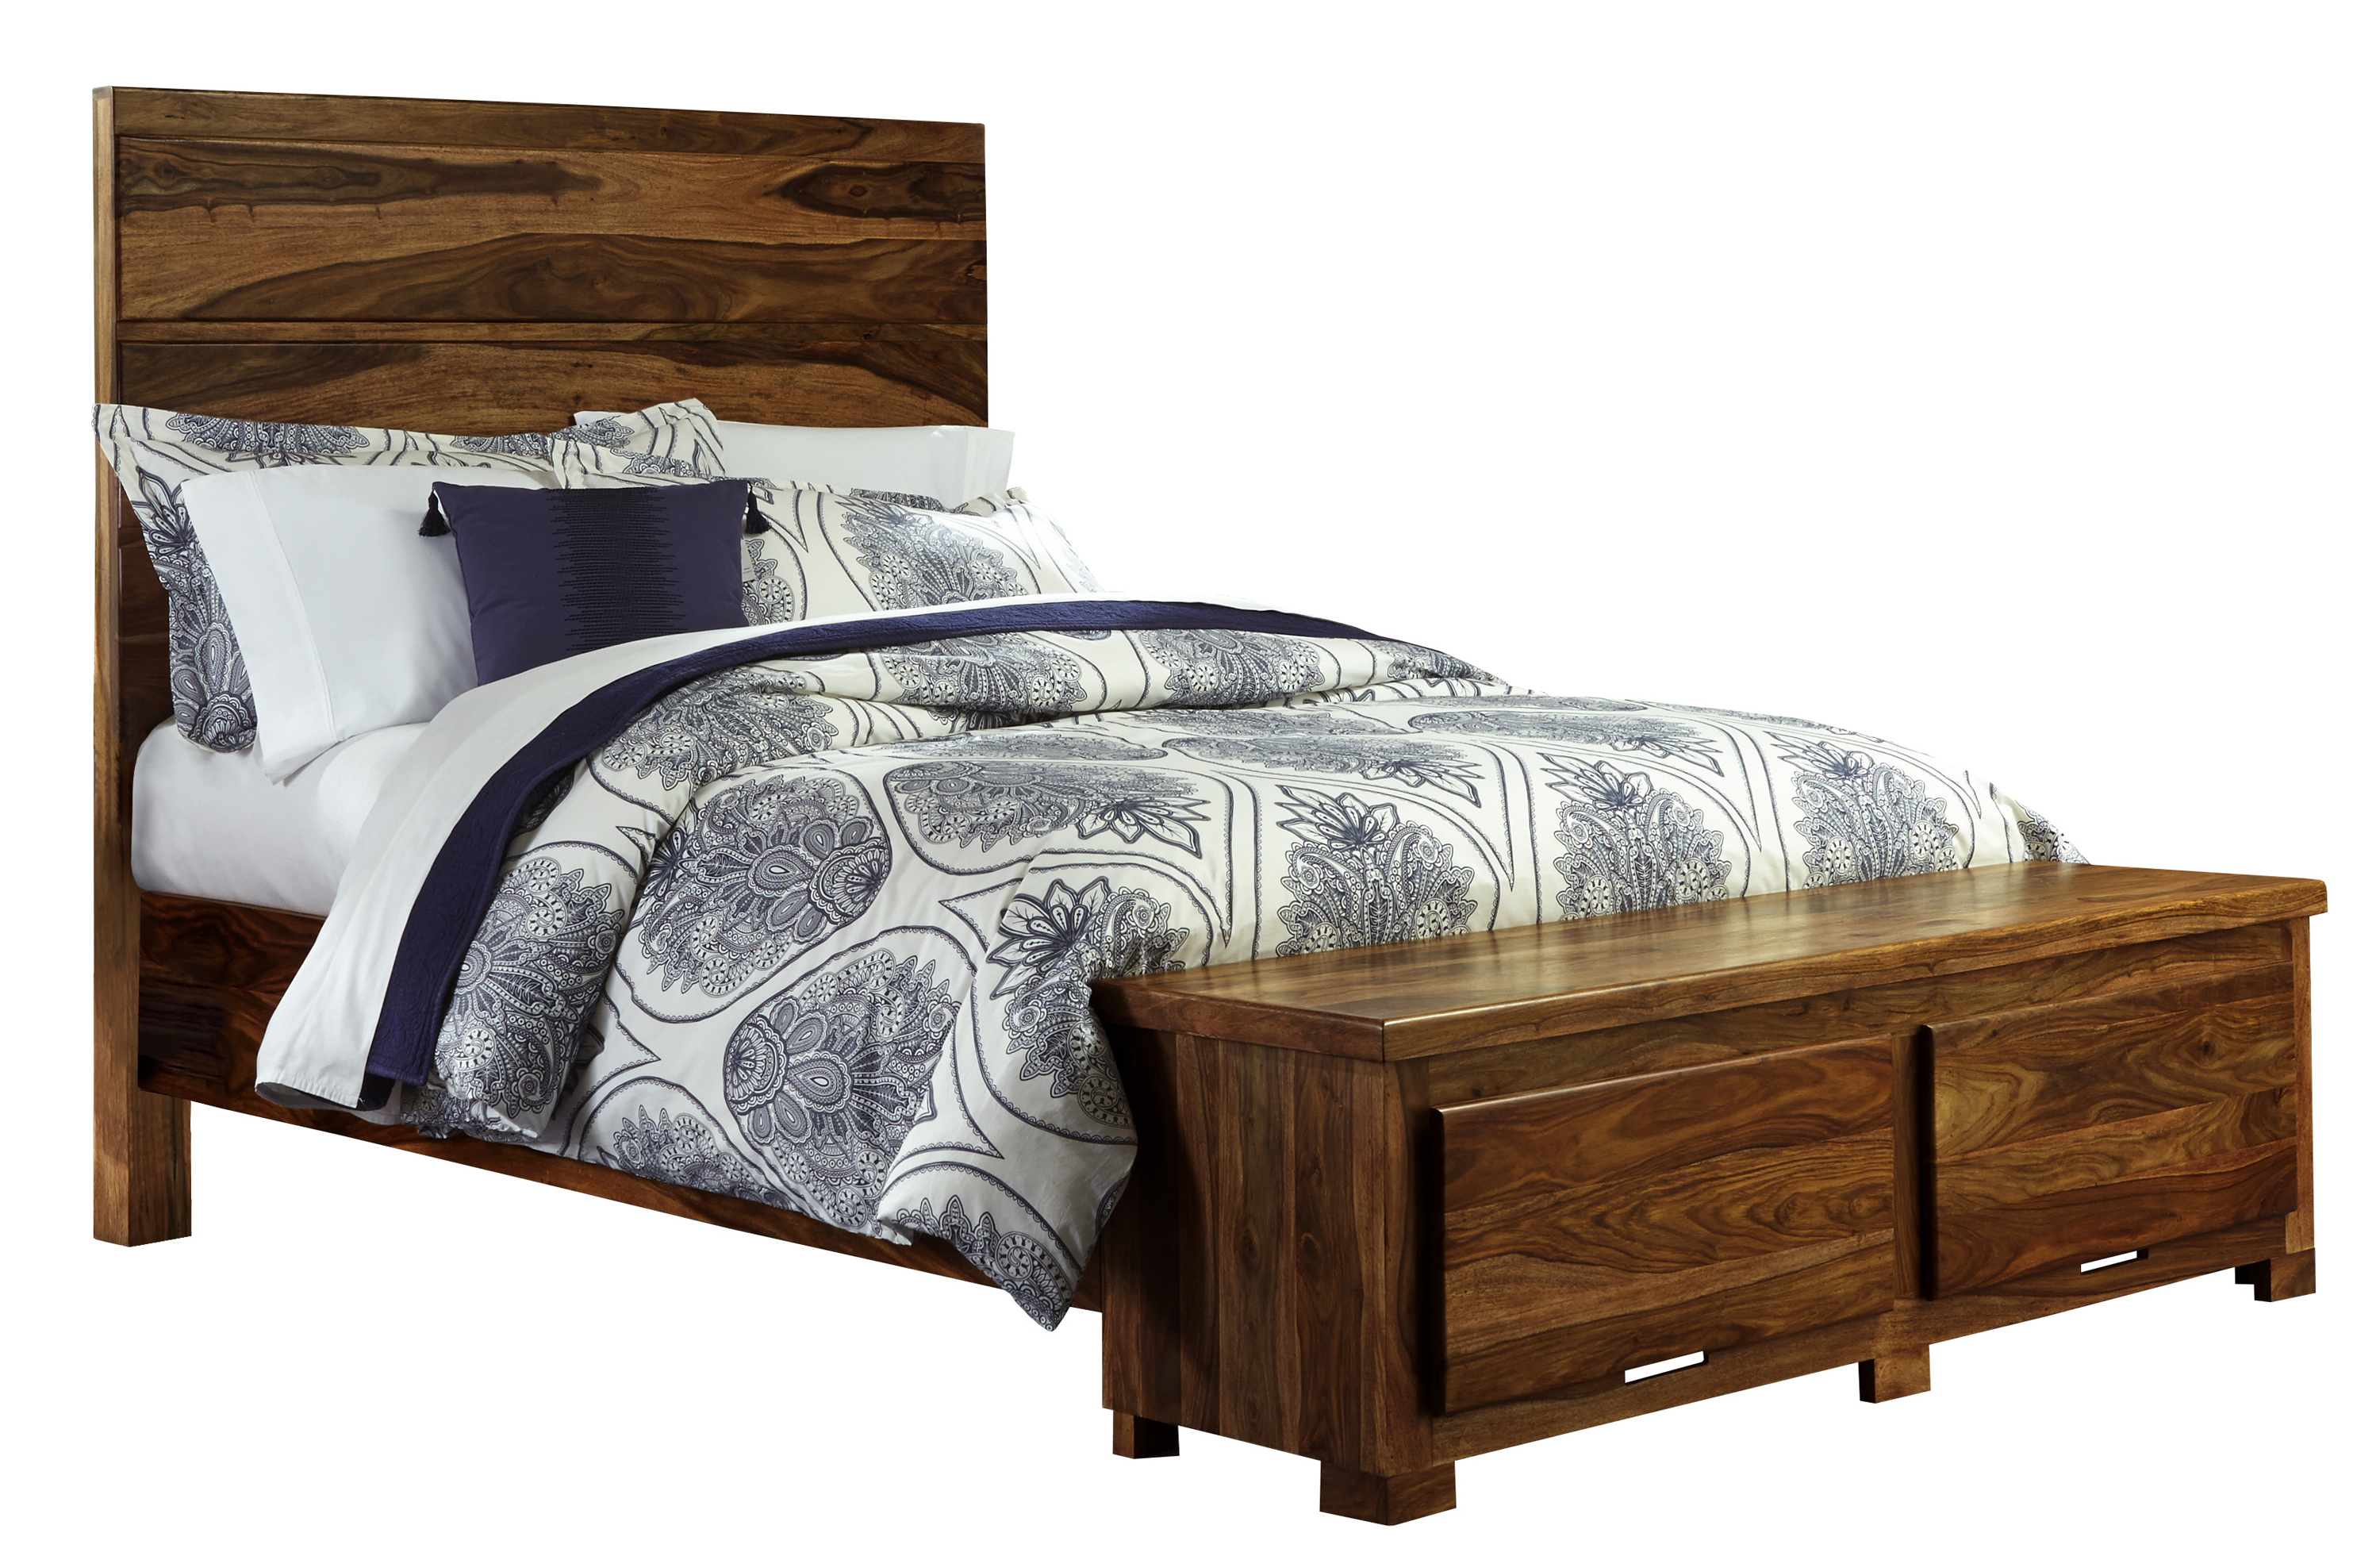 Hillsdale Madera King Storage Bed with 2 Drawers - Item Number: 1406BKRS